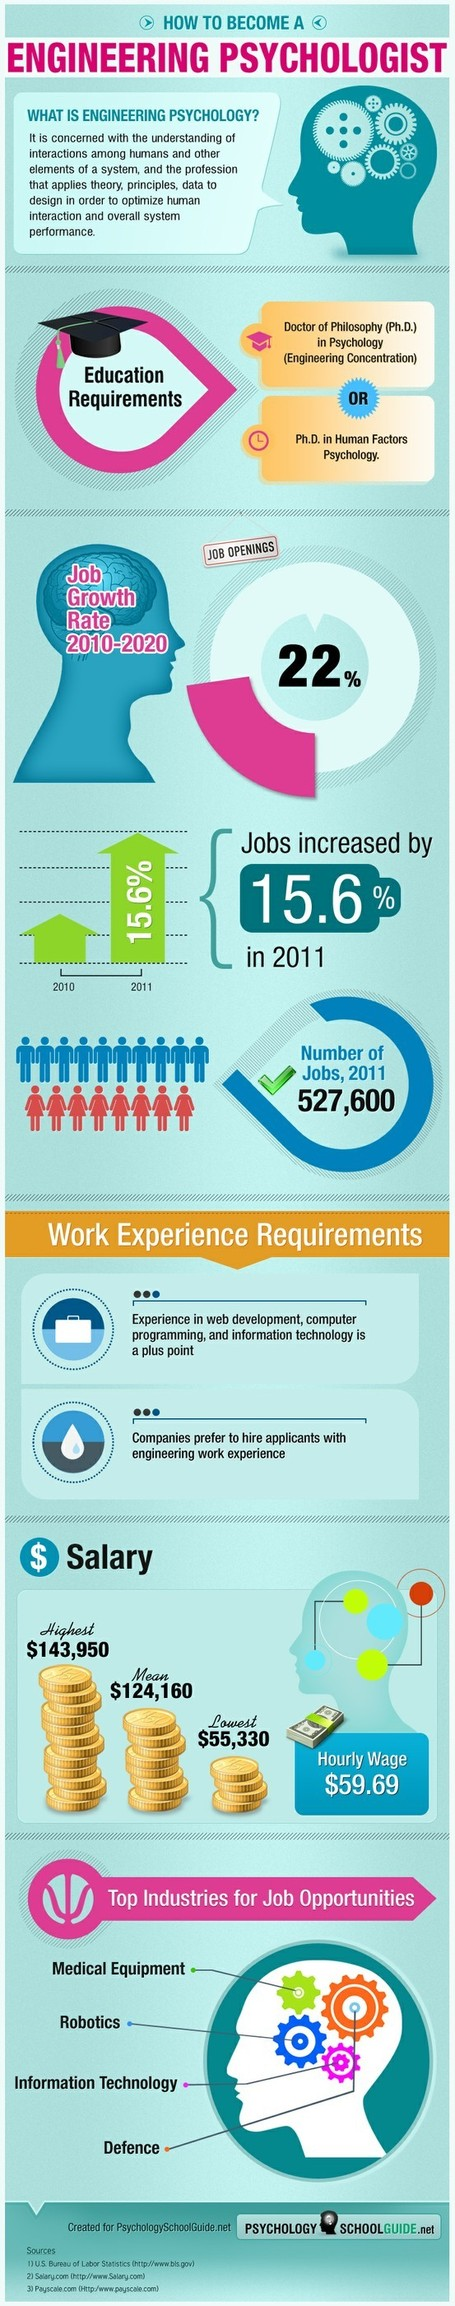 How to Become an Engineering Psychologist - Infographic | Psychology Professionals | Scoop.it